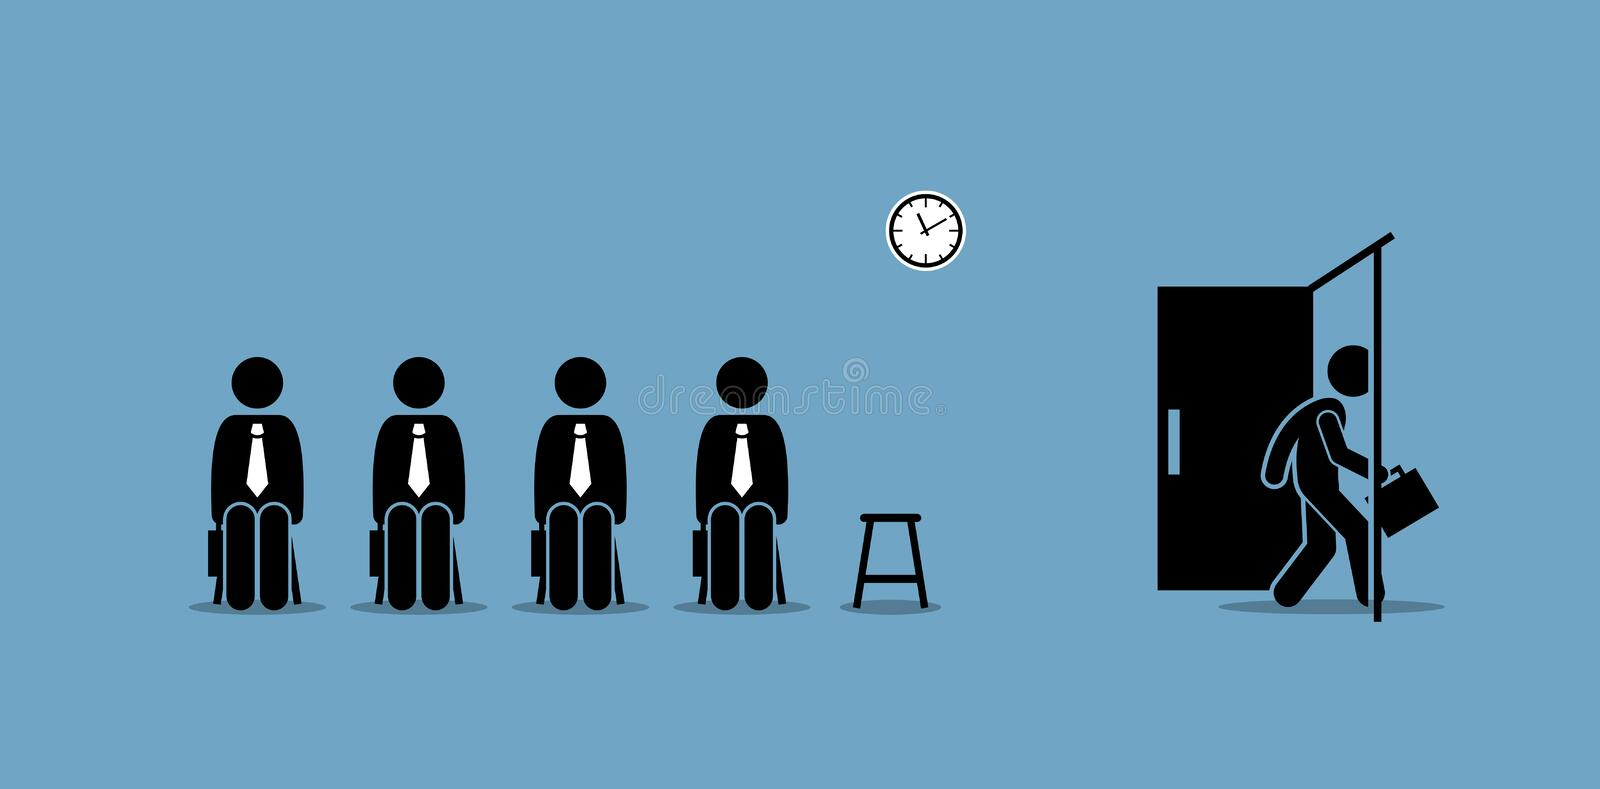 Job interview candidates waiting outside the room and a candidate walking through the door. vector illustration